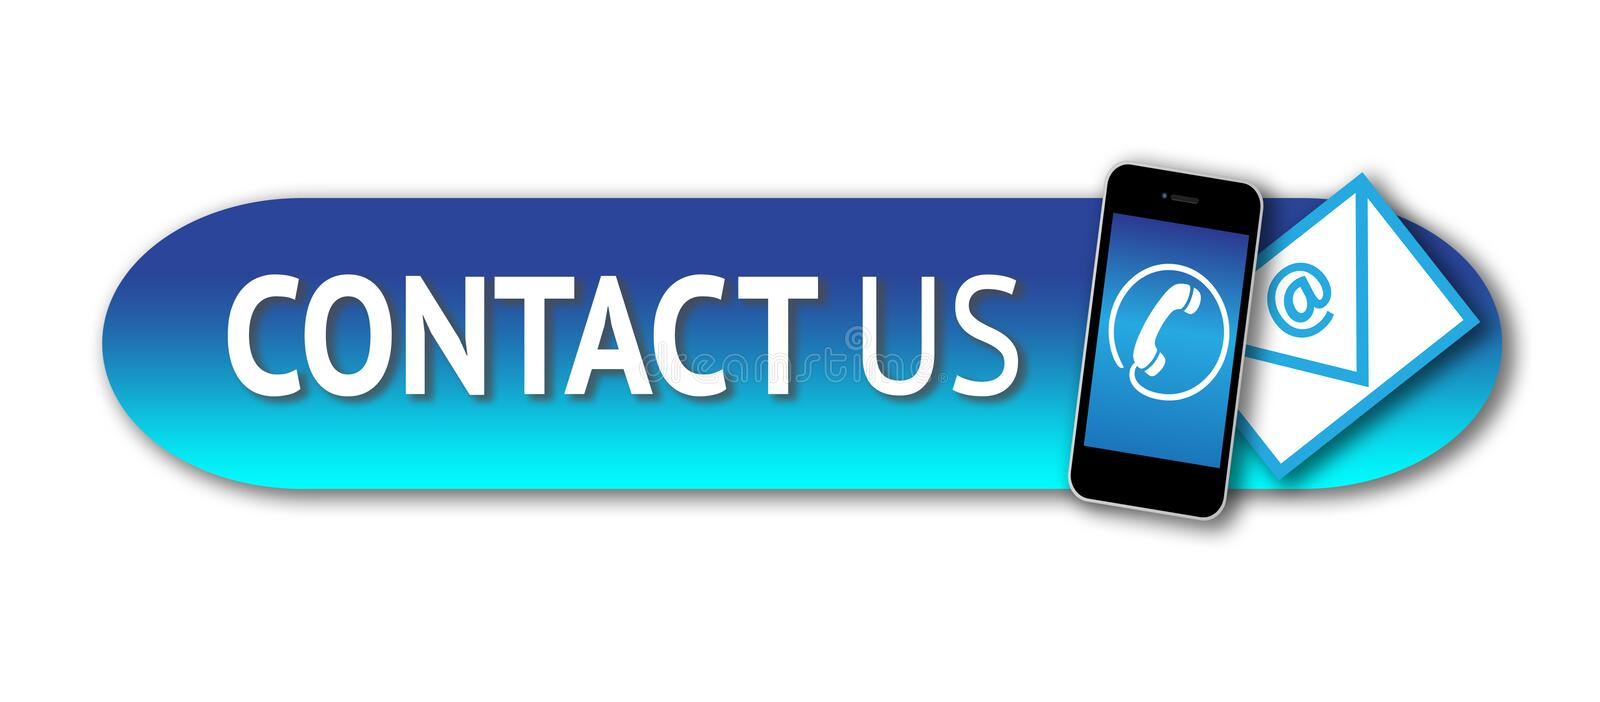 Contact us button. An image showing a contact us website button featuring the words Contact Us, an image of a mobile telephone with a phone icon and an envelope